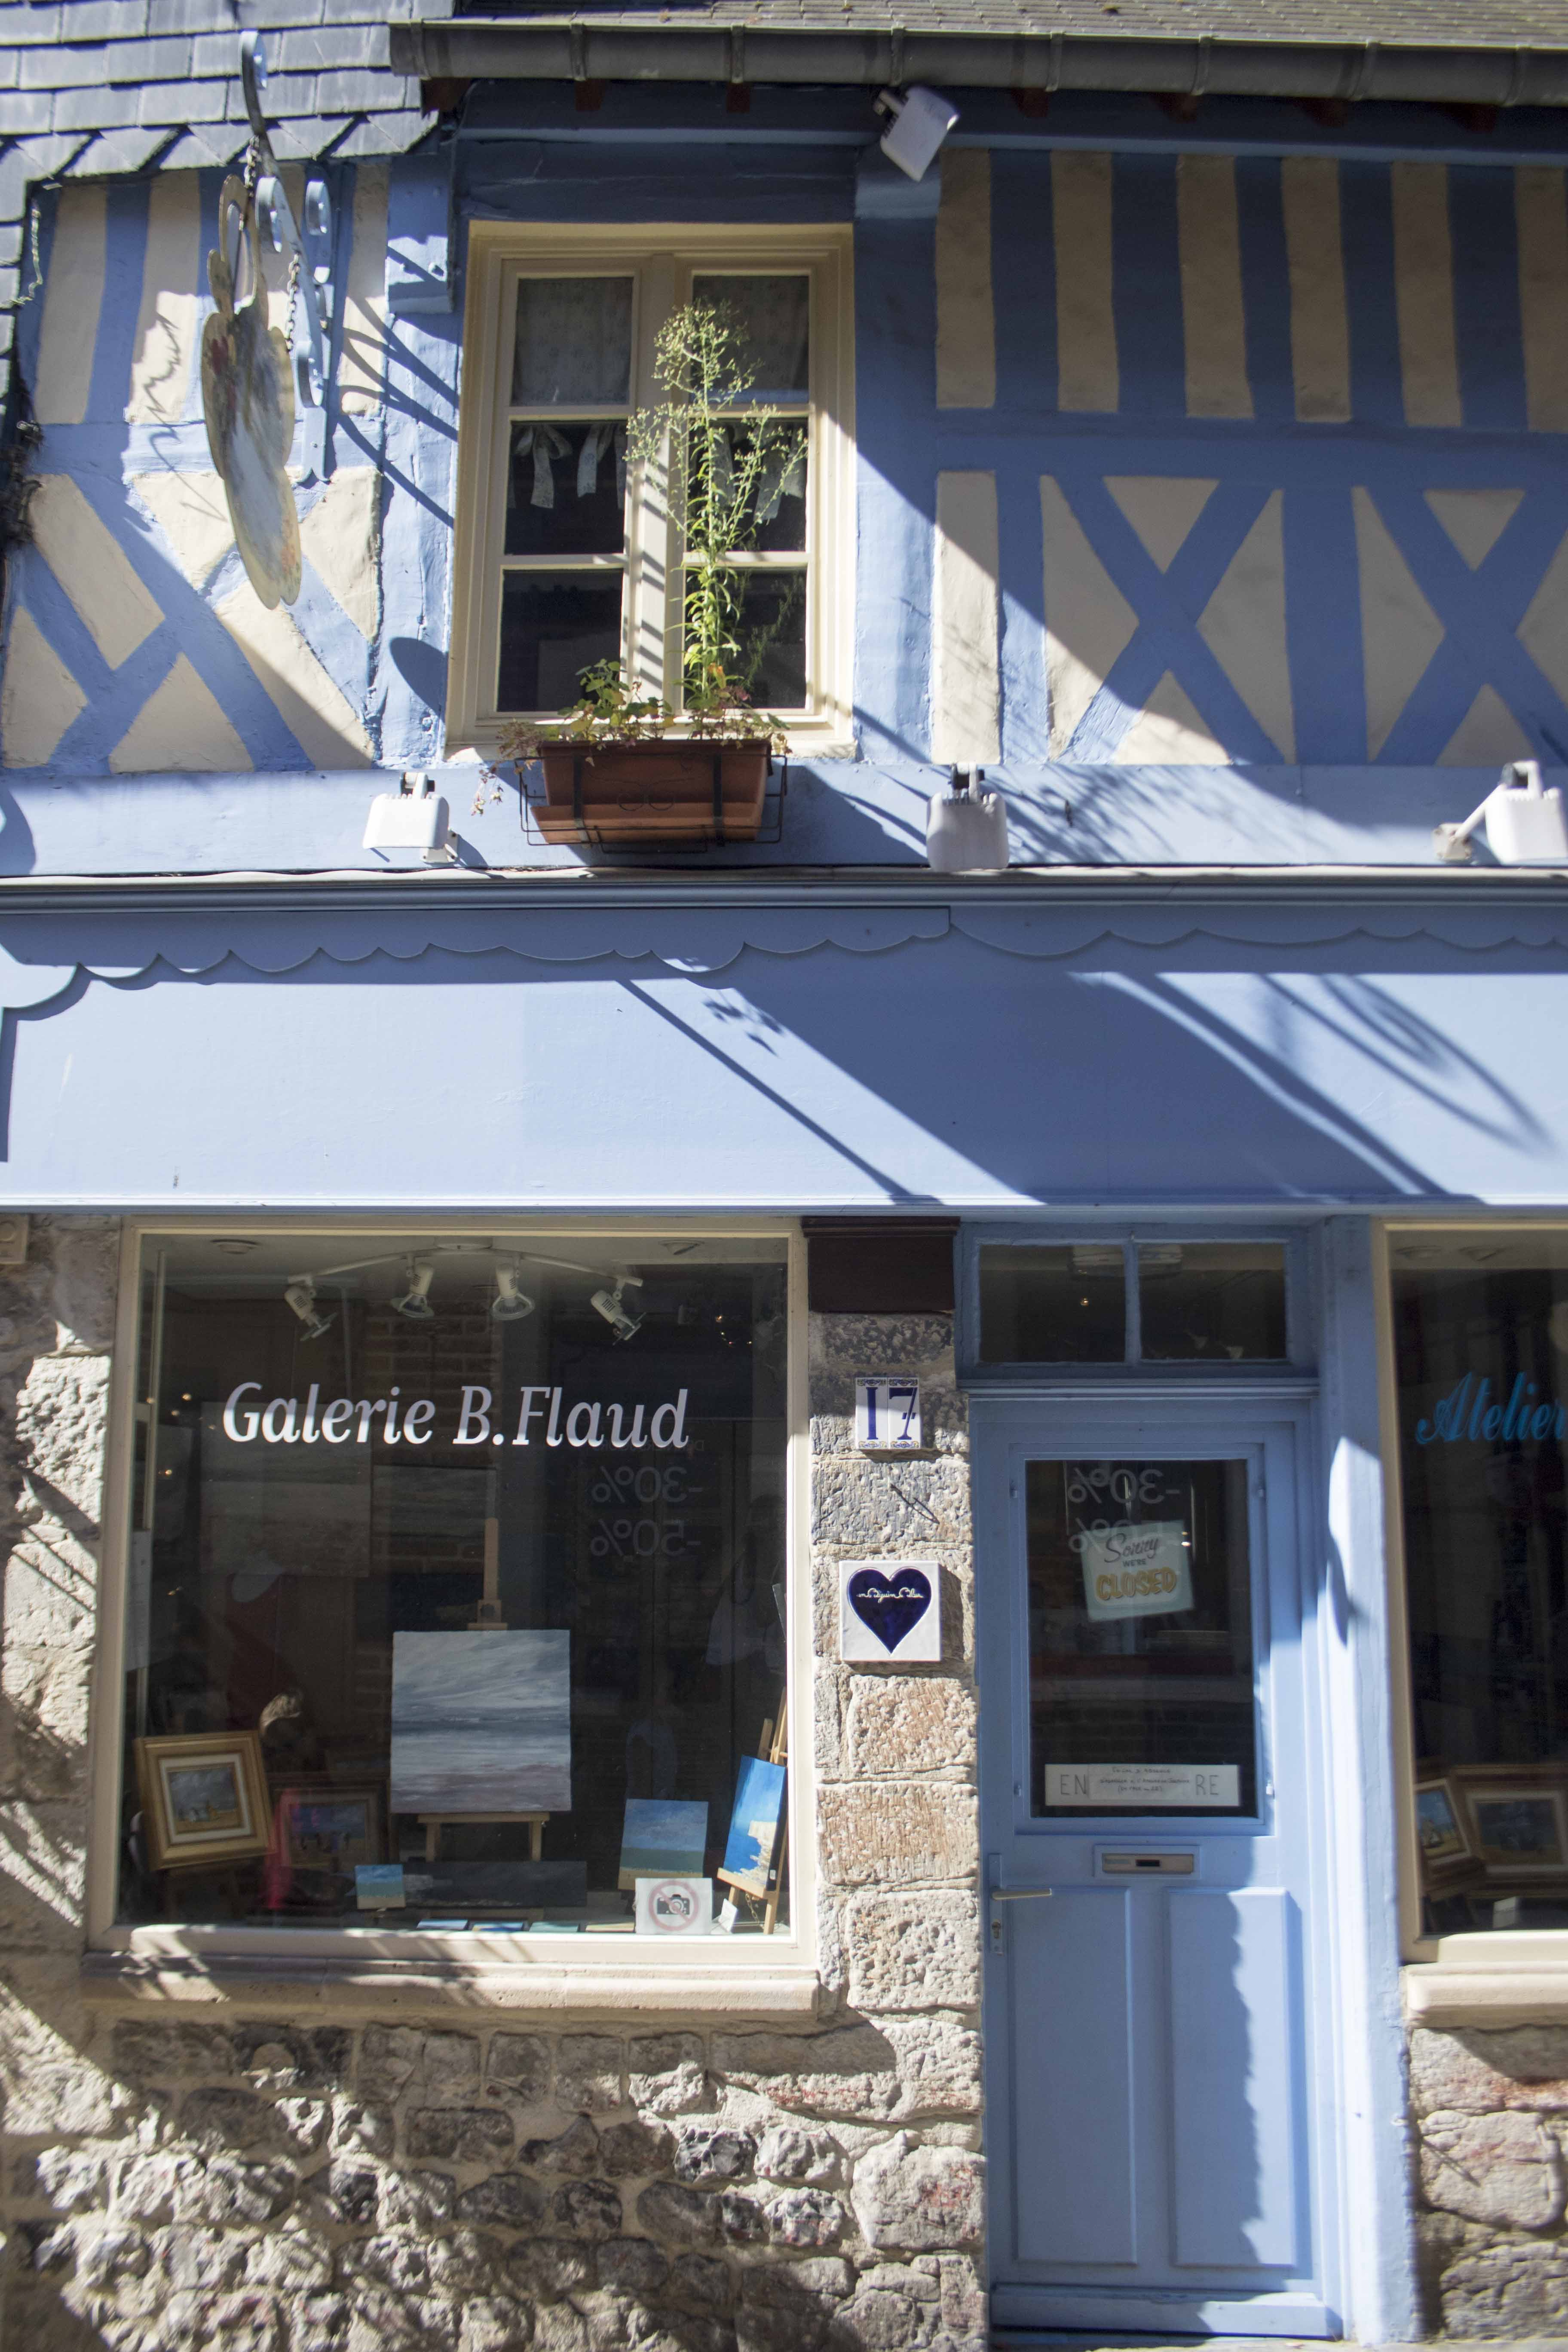 Adorable normand shop in Honfleur